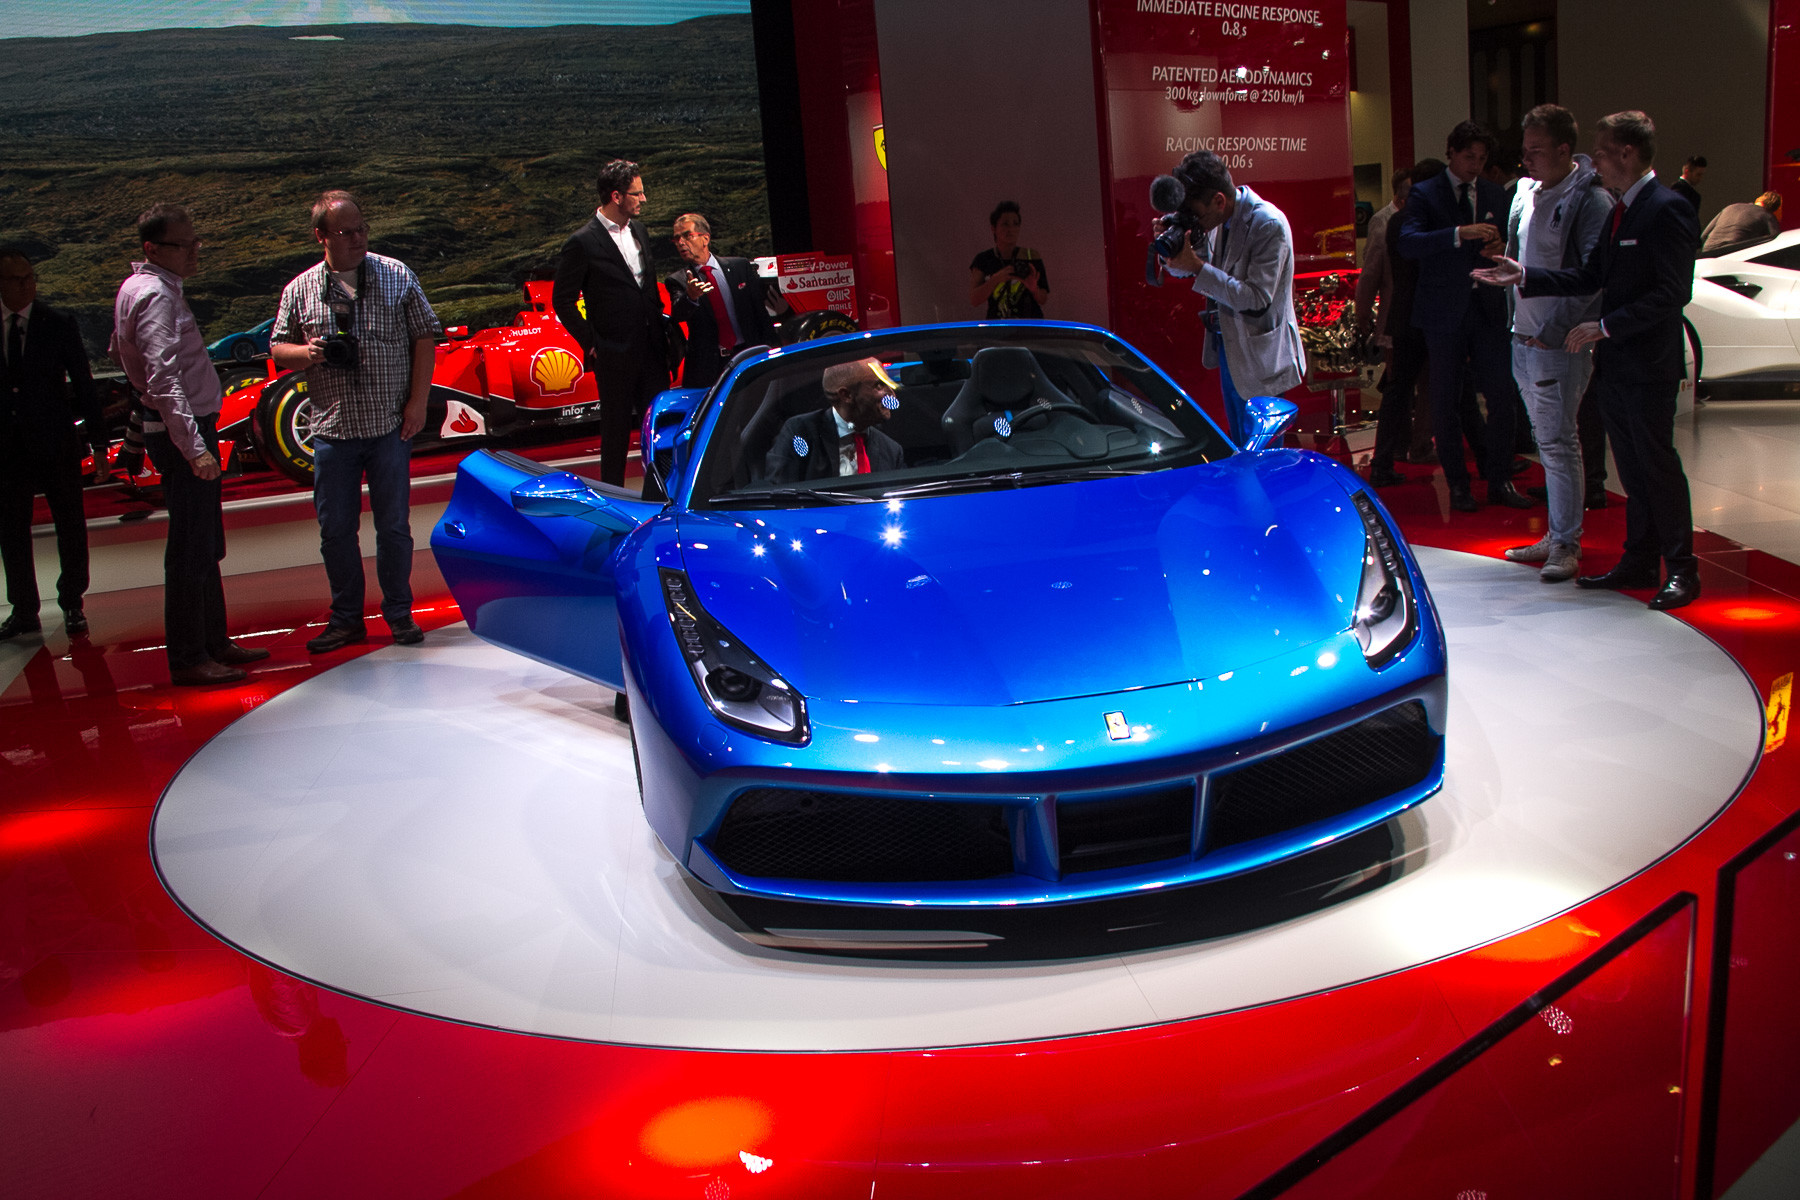 Ferrari 488 Spider - Princess of Motor Show in Frankfurt